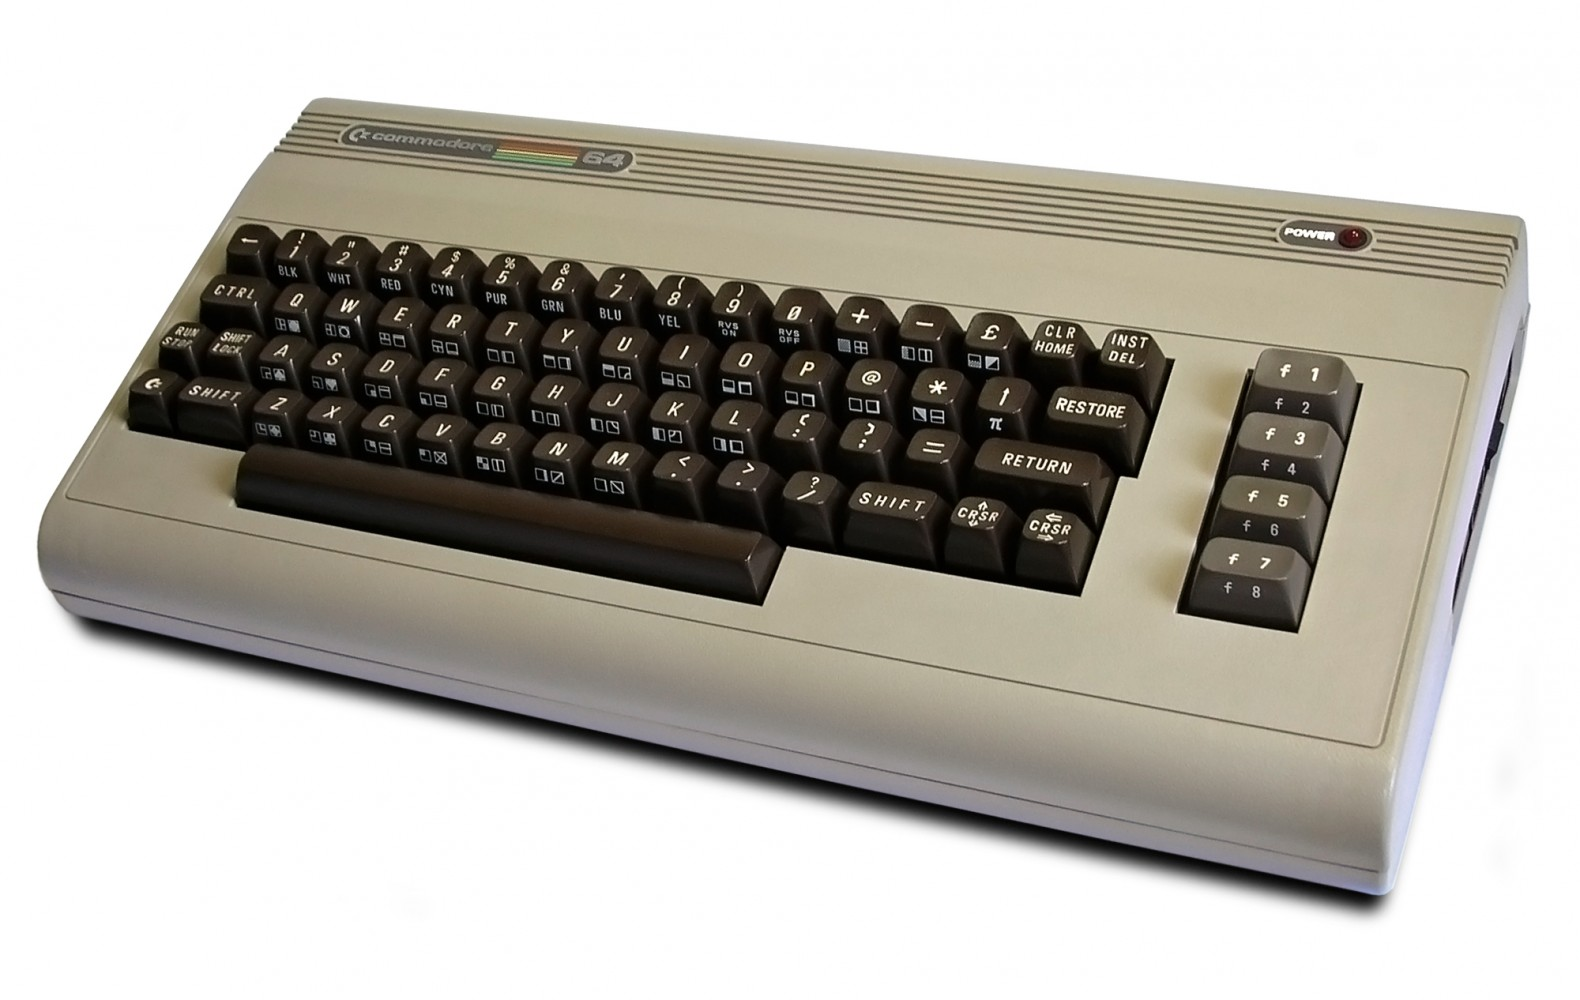 Commodore 64 photo courtesy Bill Bertram, Wikimedia.